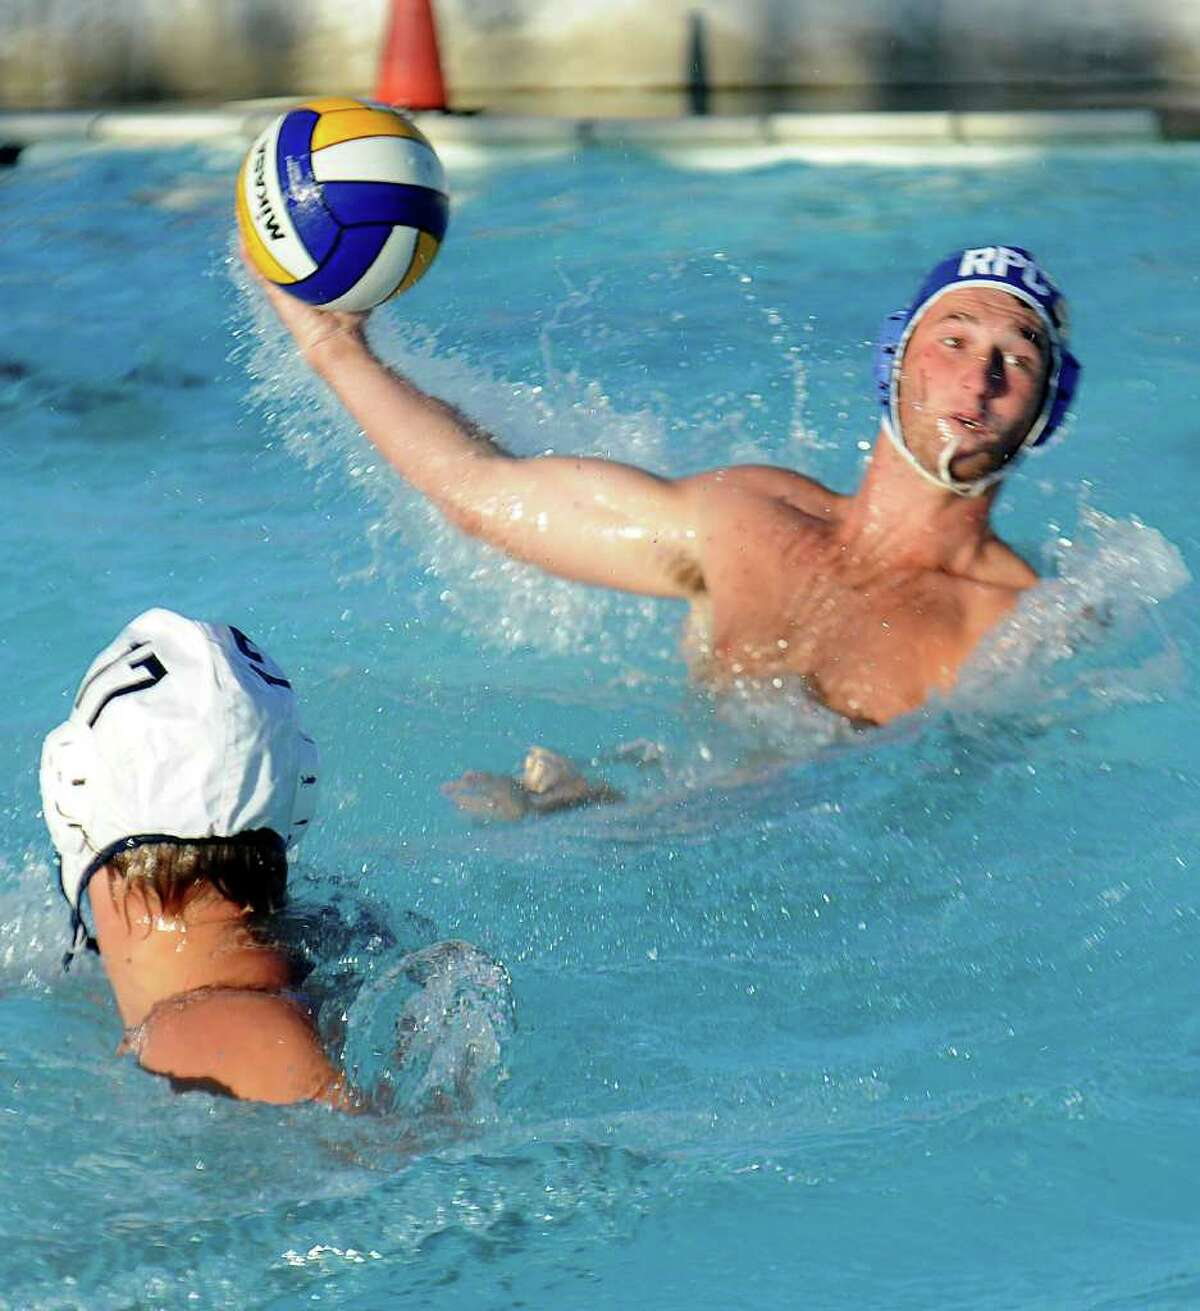 Rocky Point Club's Mark Nietzel competes during the Fairfield County Swim League Water Polo Championship game at Rock Point Club in Greenwich on Thursday, August 11, 2011.